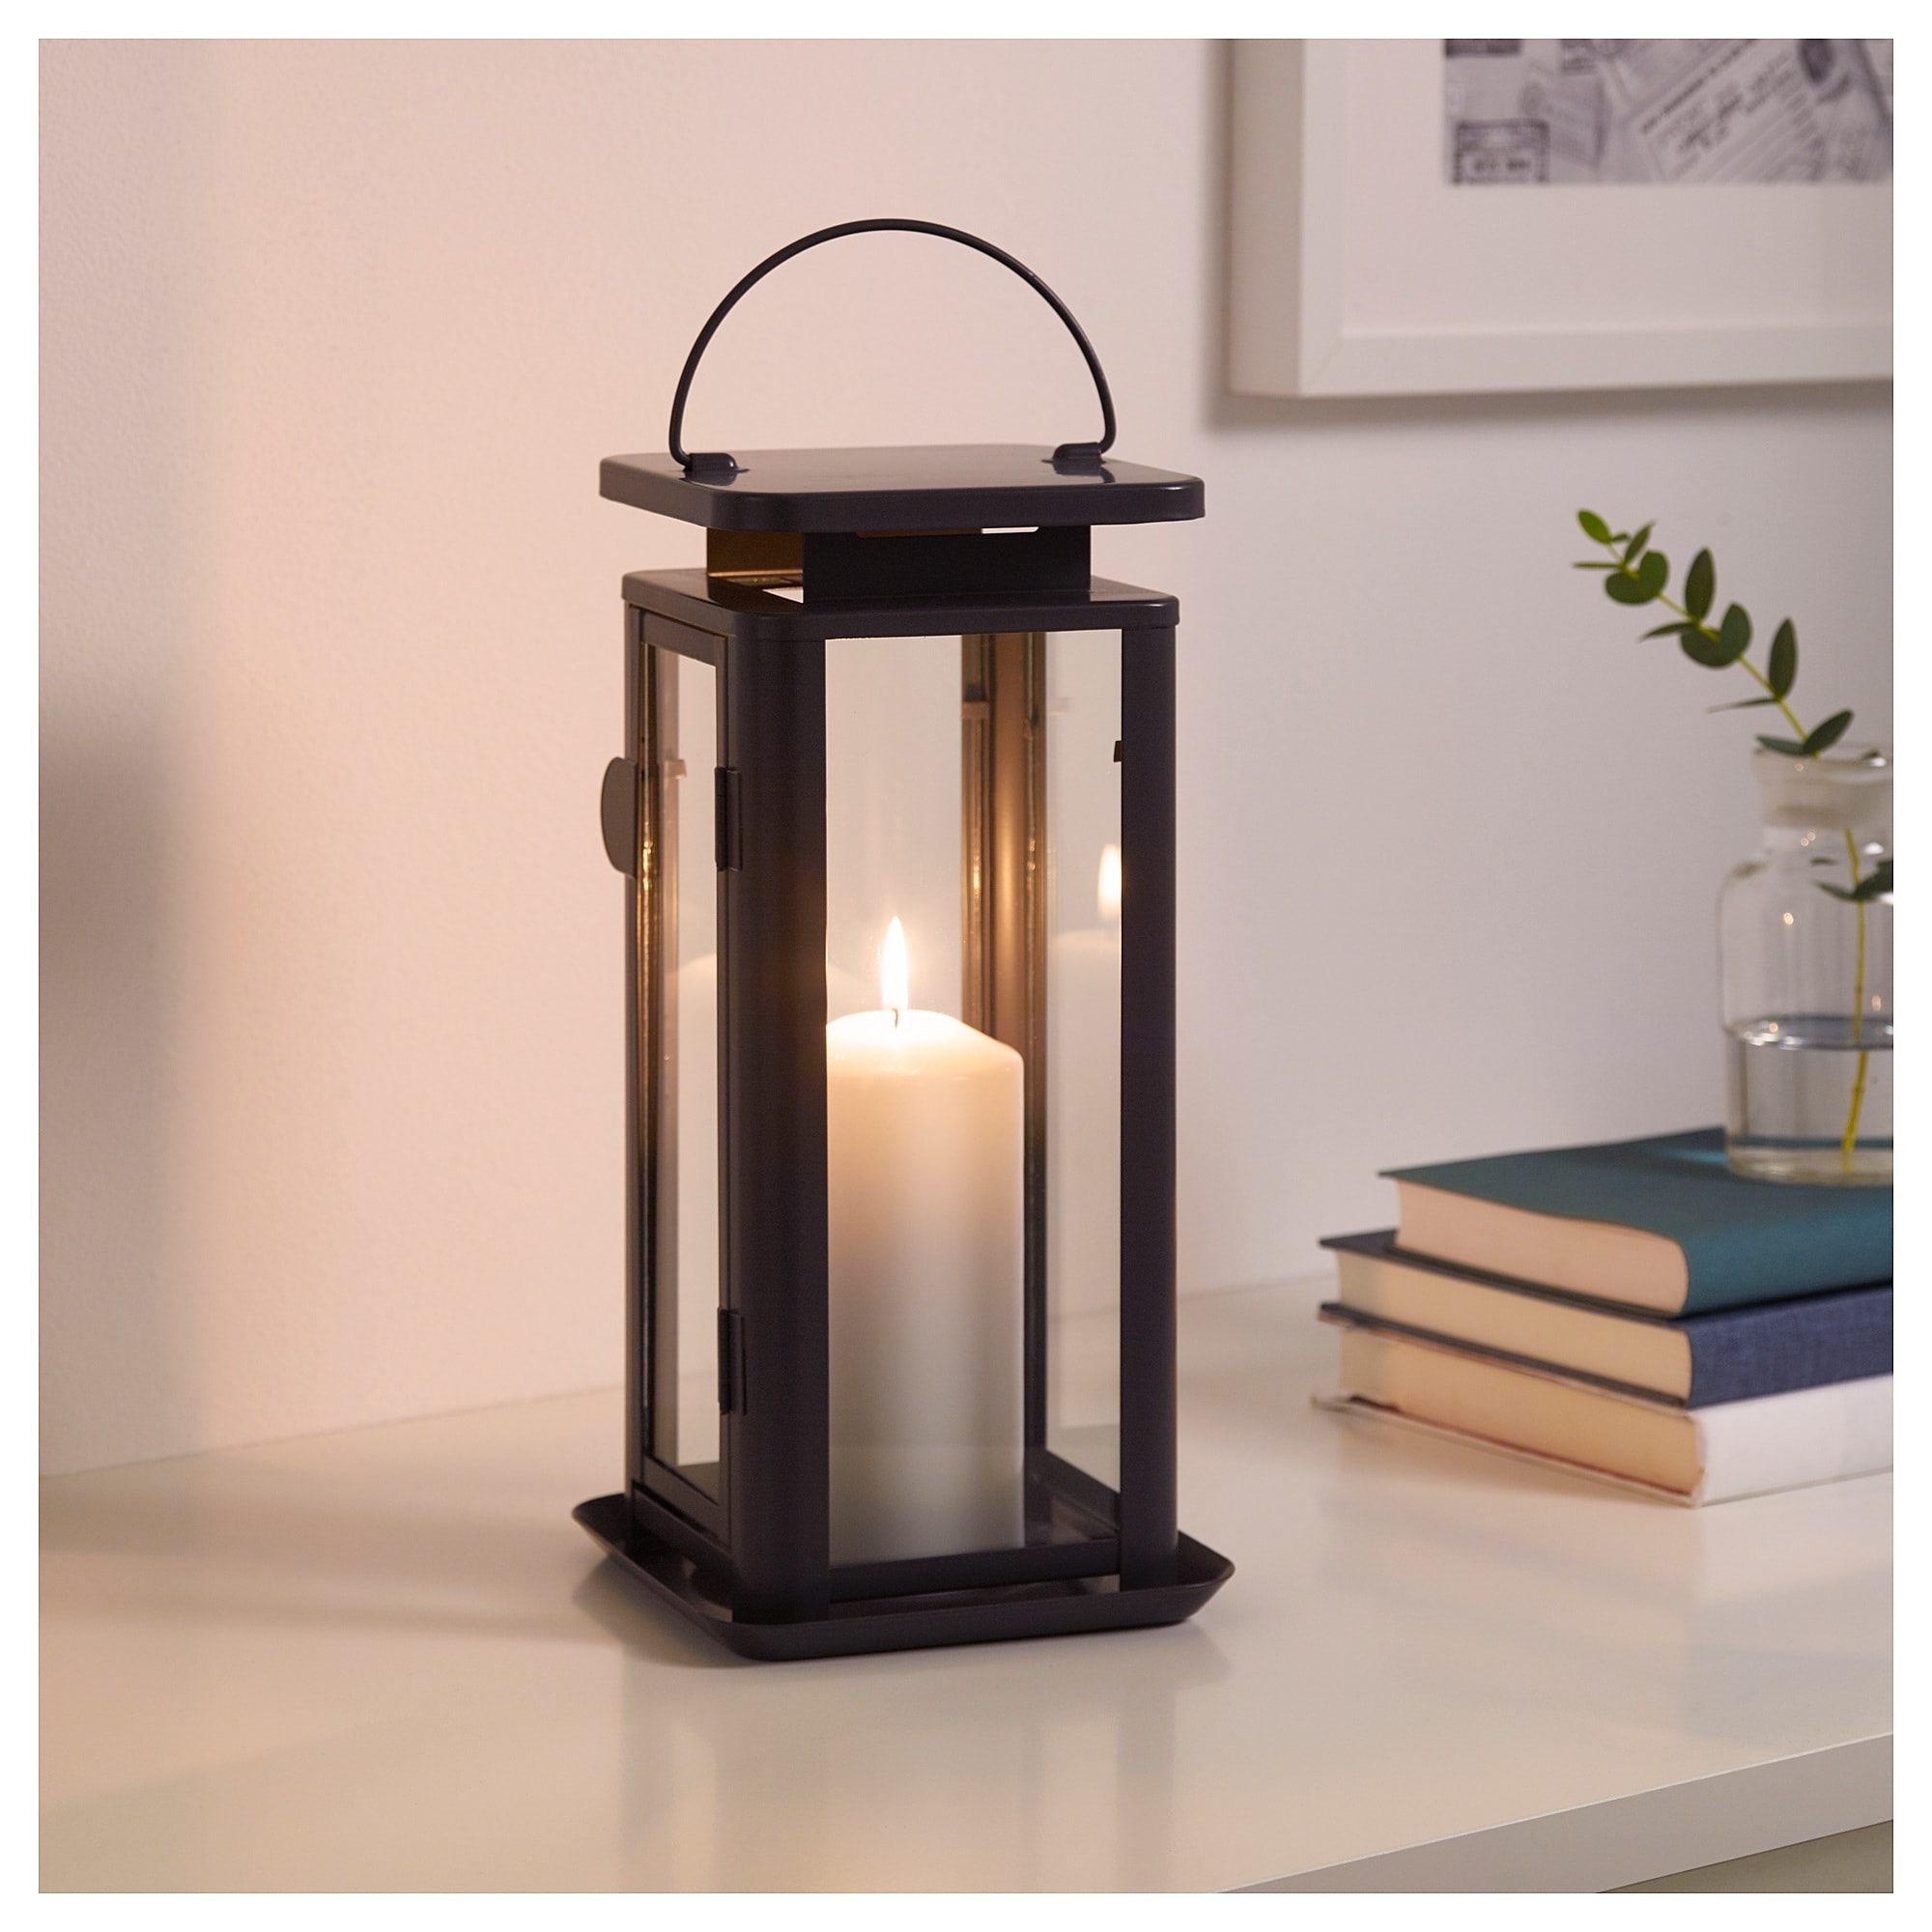 Sinnesro Lantern F Block Candle, In/outdoor Grey 29 Cm – Ikea Within Most Popular Outdoor Grey Lanterns (View 16 of 20)